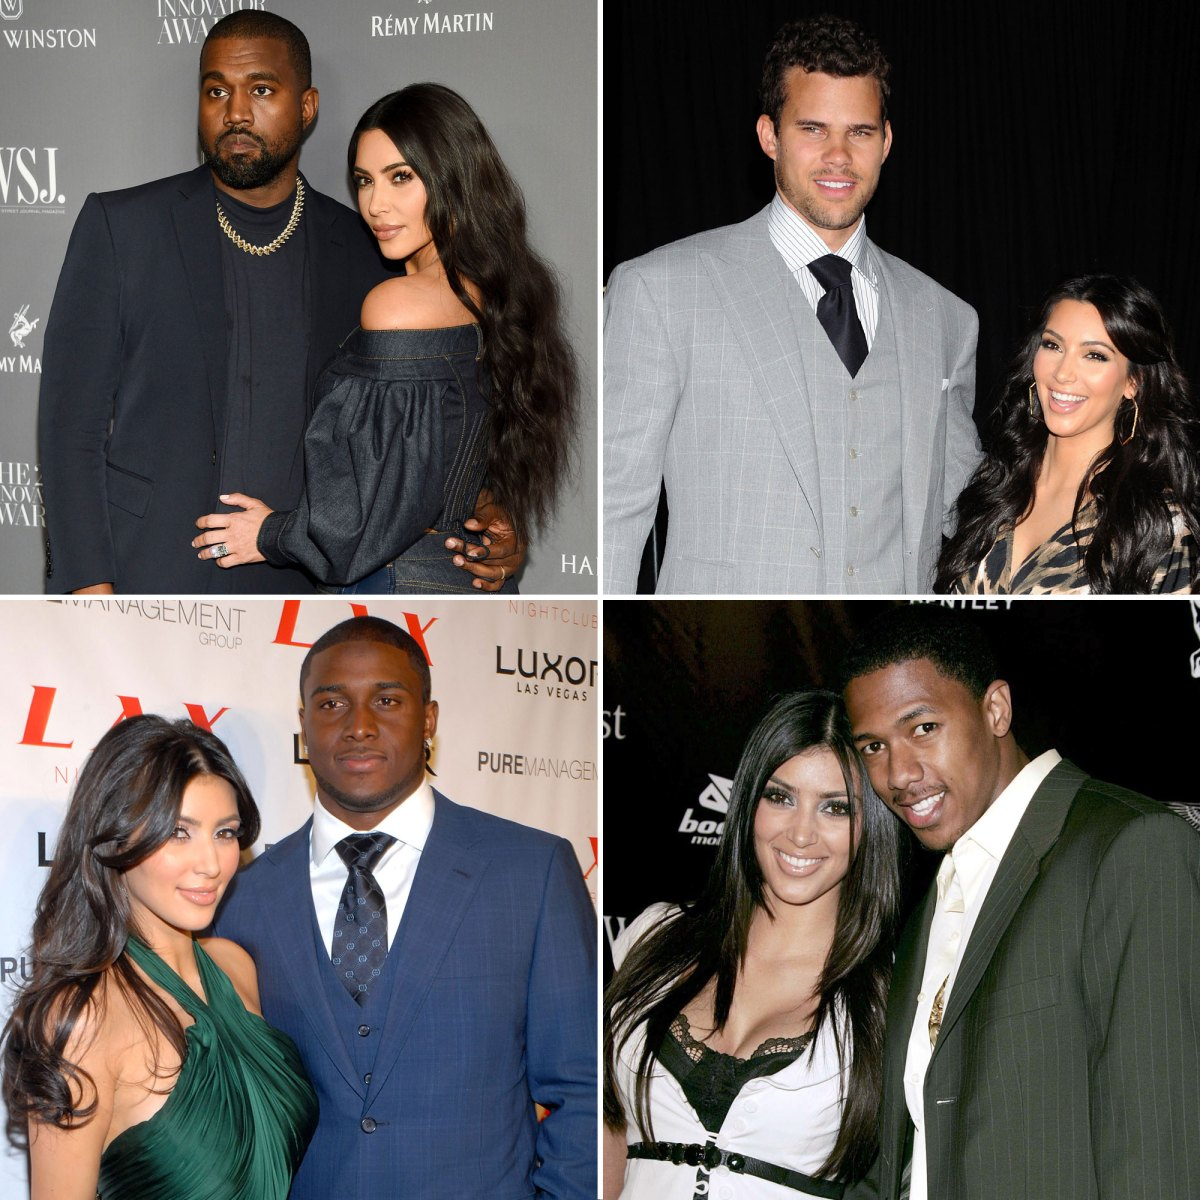 Who are the kardashians dating is usher dating rihanna